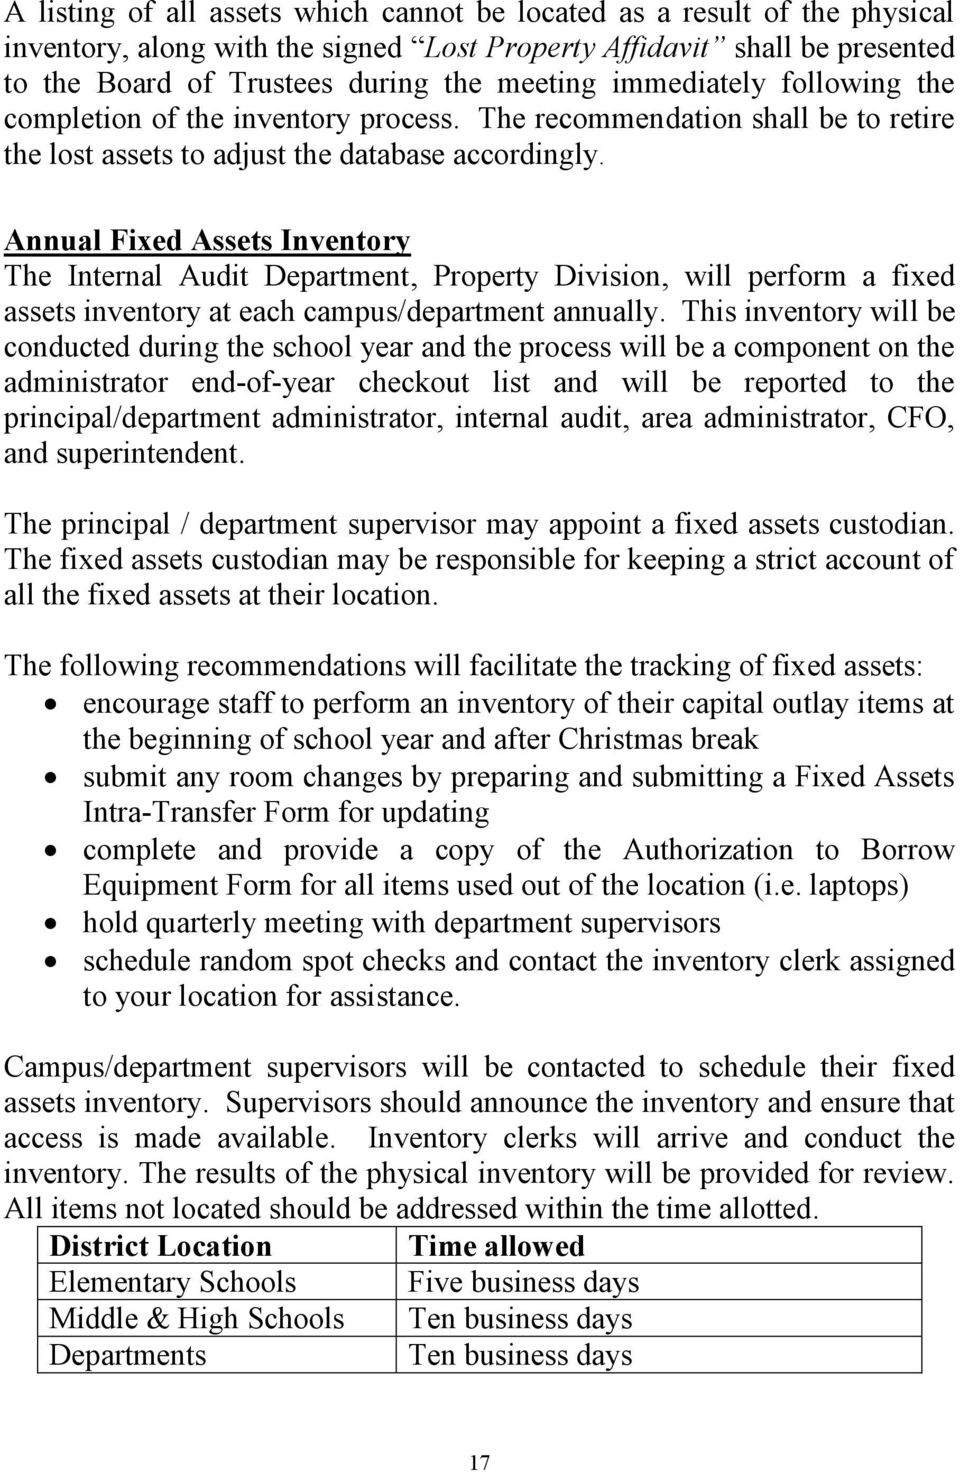 Annual Fixed Assets Inventory The Internal Audit Department, Property Division, will perform a fixed assets inventory at each campus/department annually.